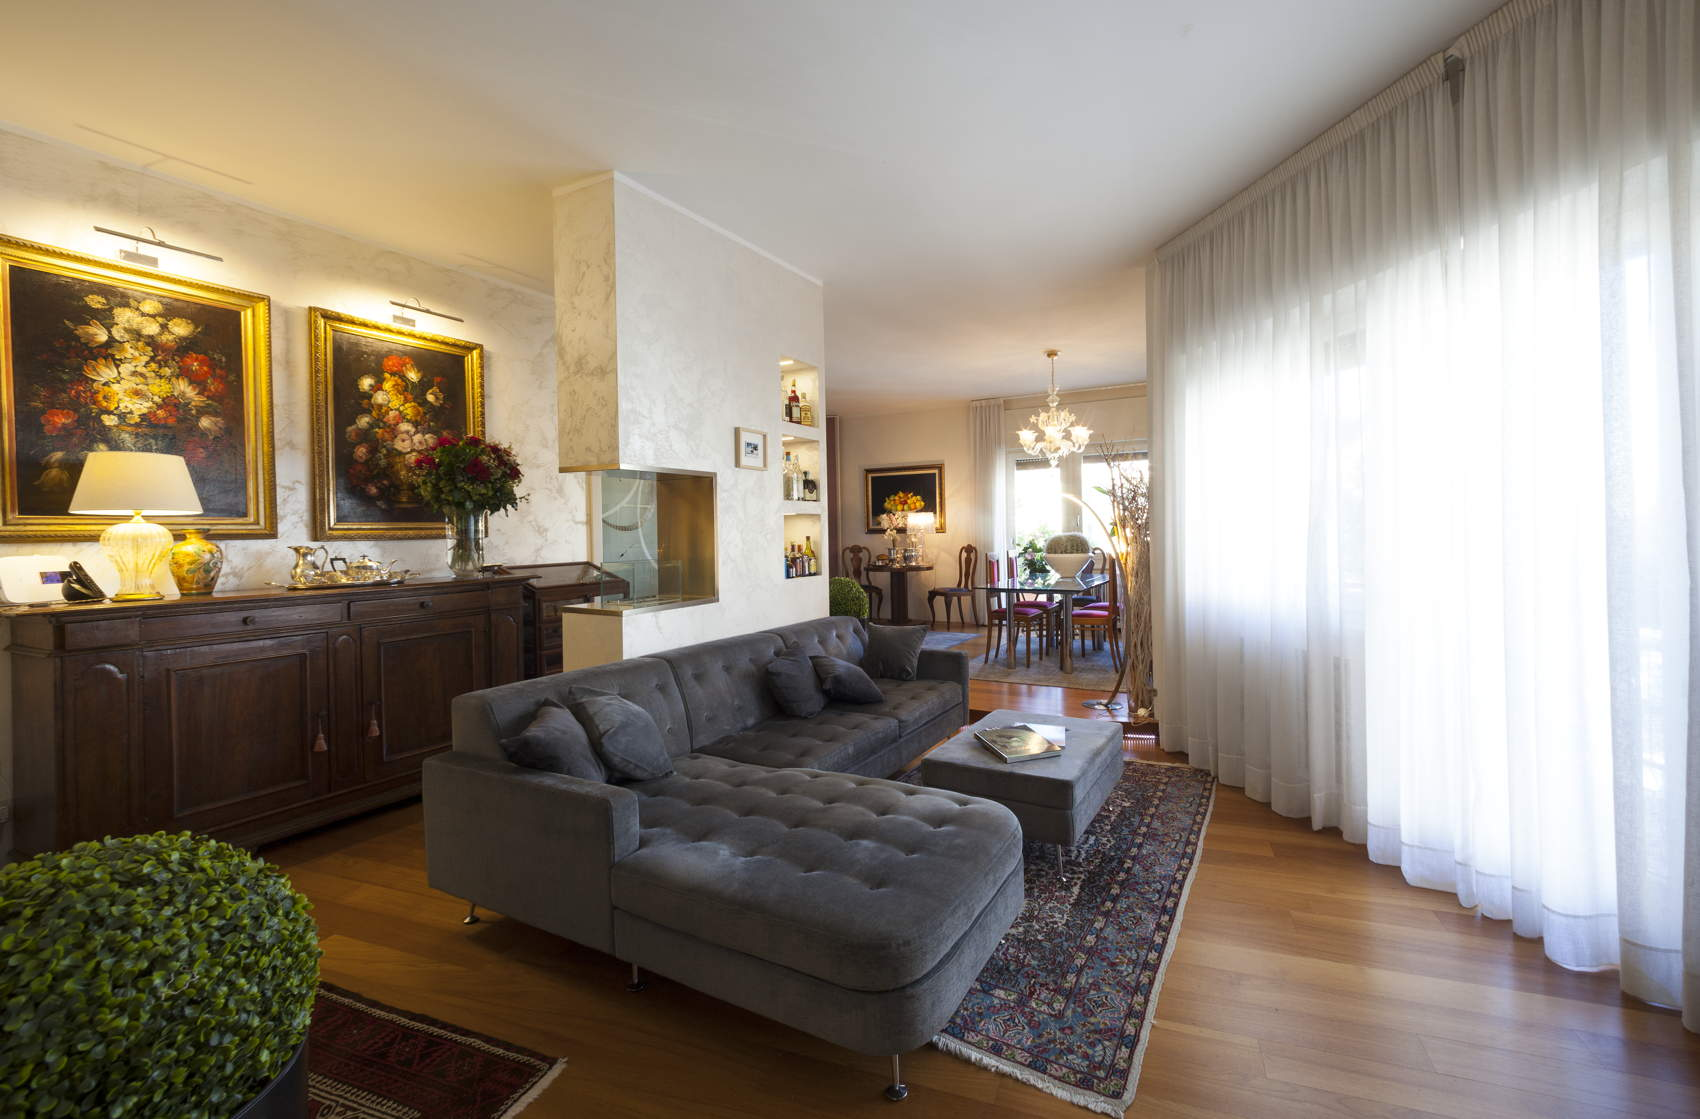 Private house - Verona